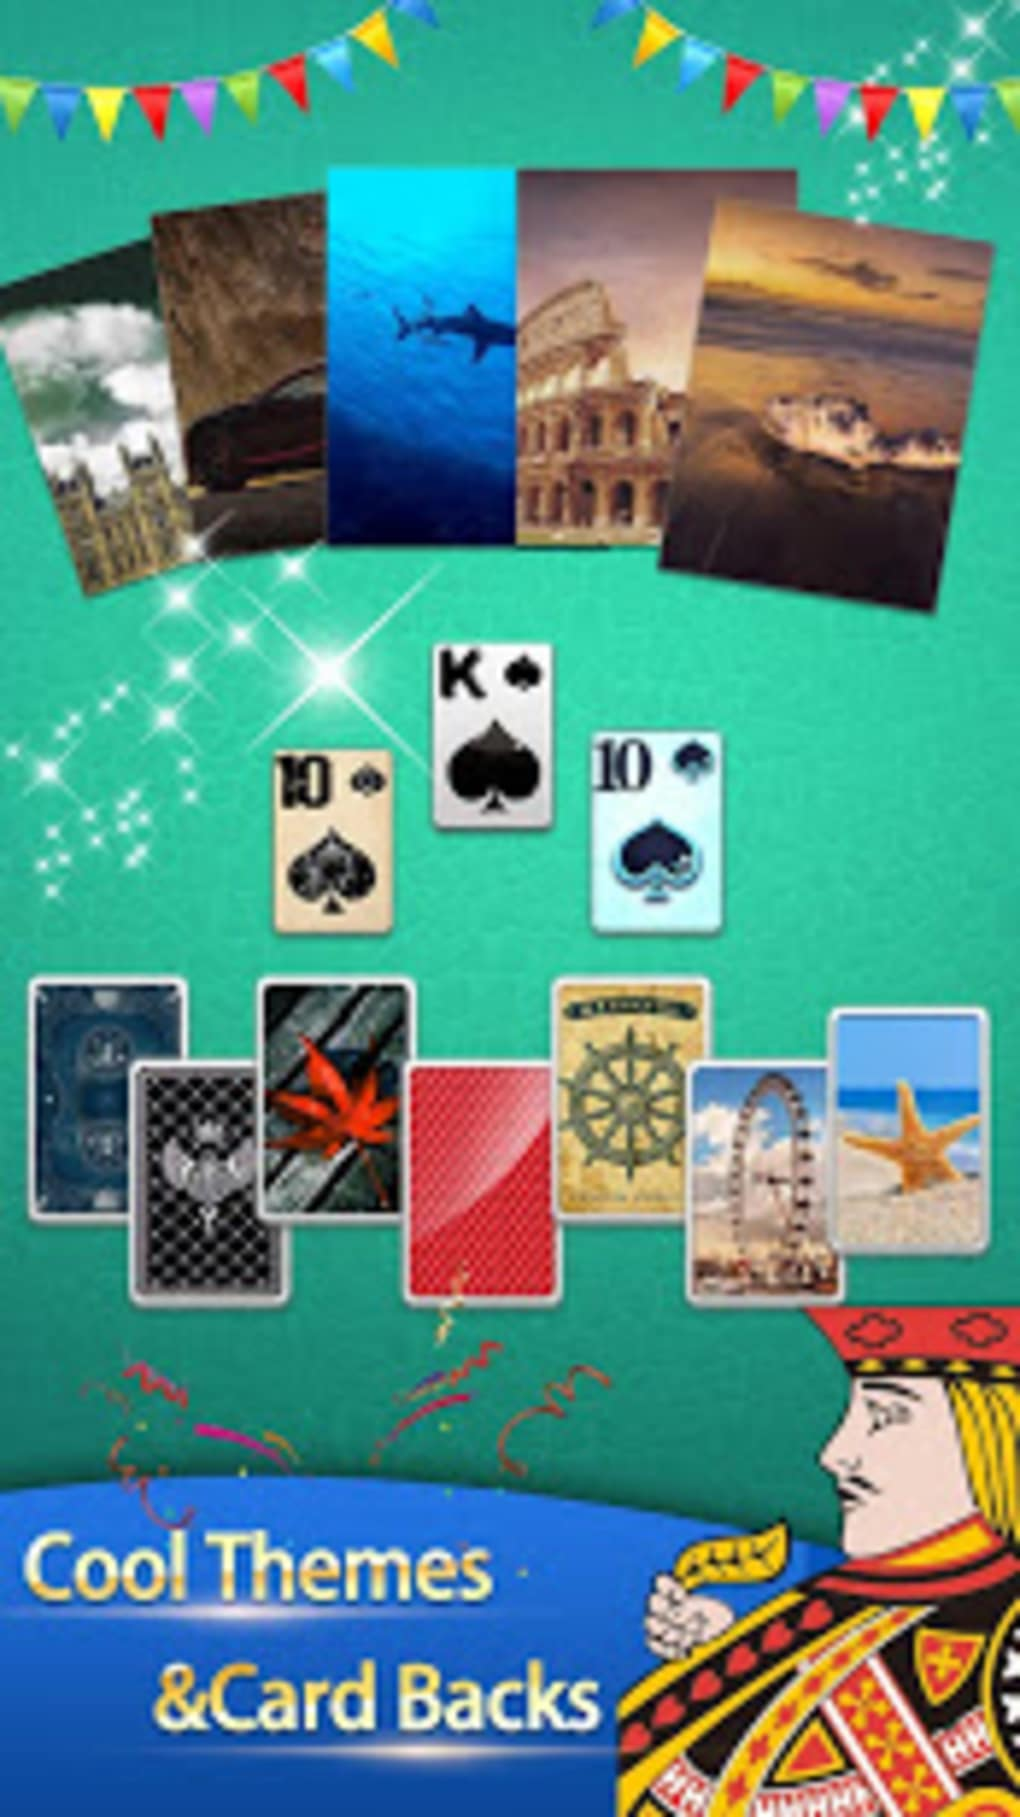 SolitaireClassic Card Games